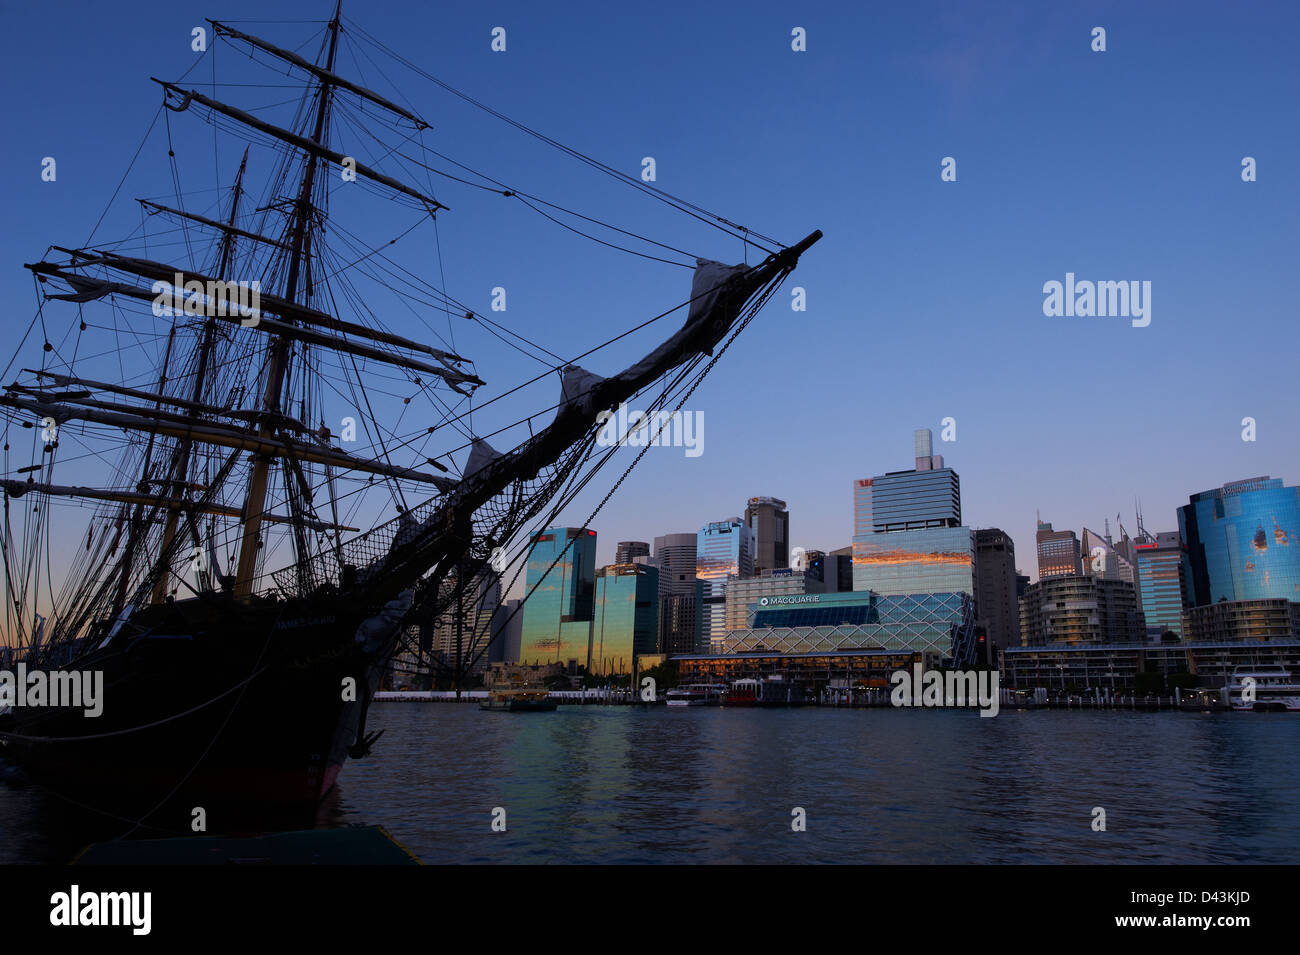 The Tall Ship James Craig moored in Darling Harbour Sydney Australia - Stock Image